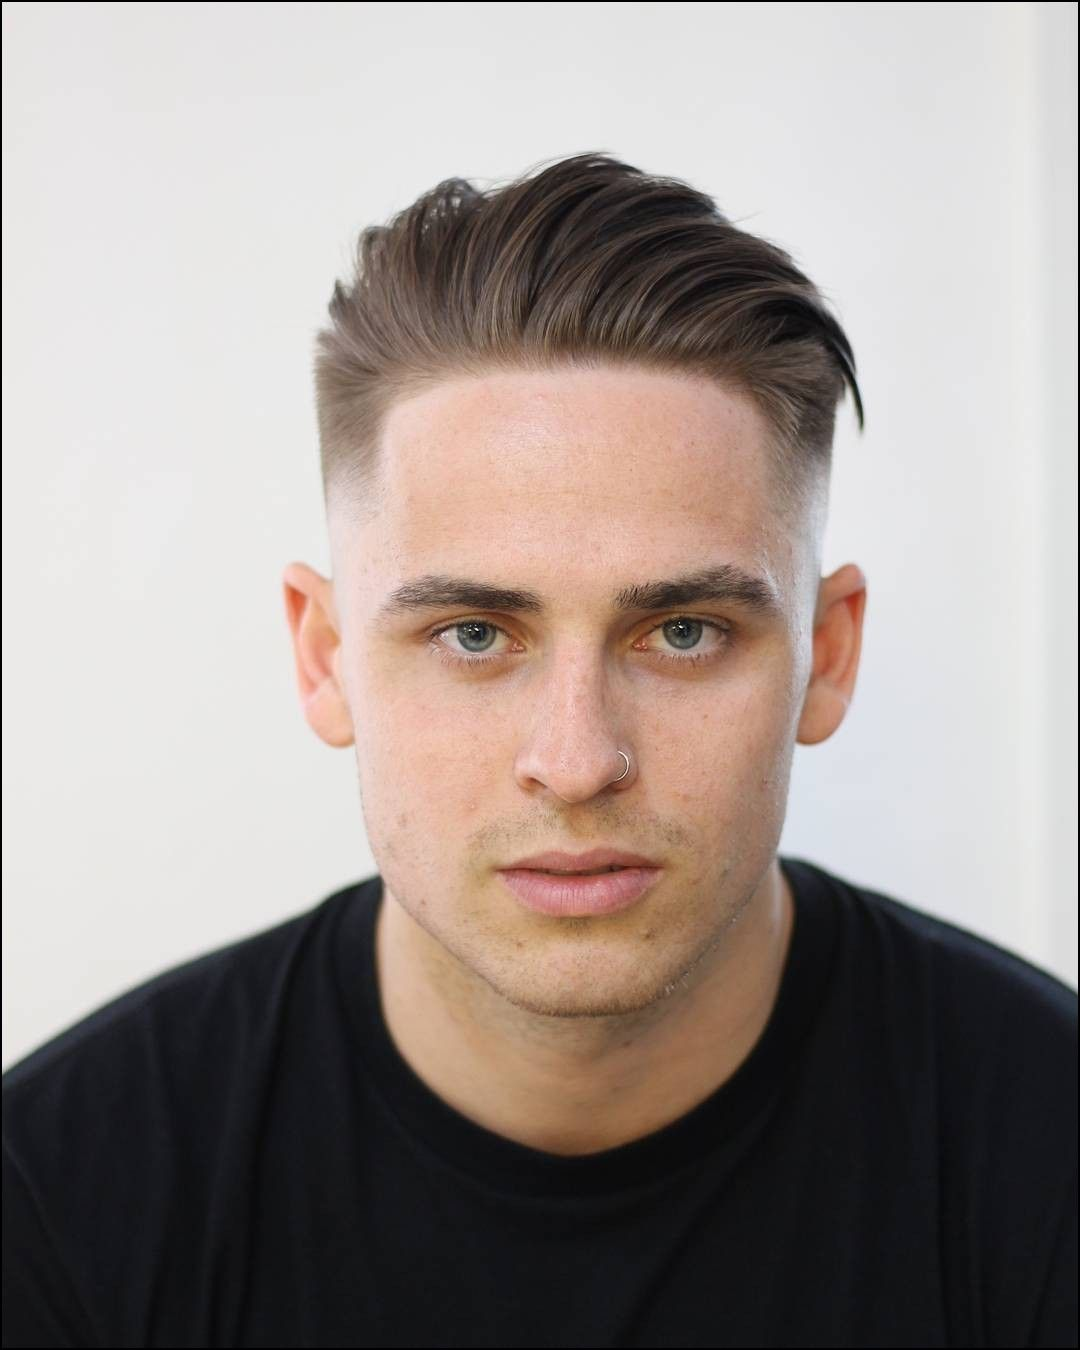 Best Haircut For Men With Straight Hair Mens Haircuts Short New Men Hairstyles Medium Hair Styles